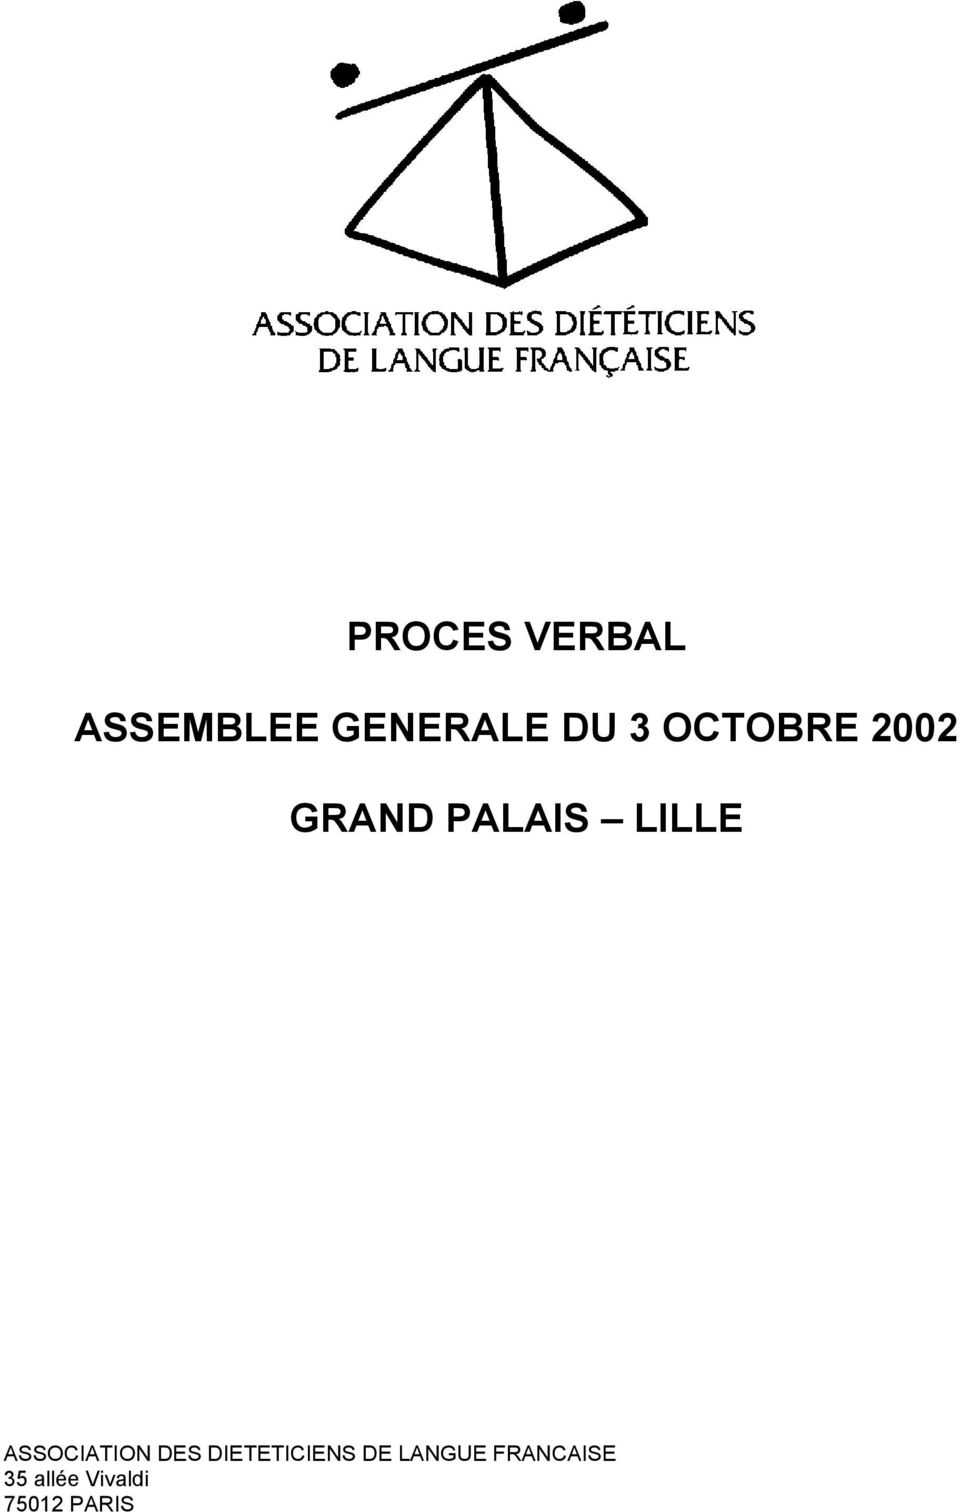 ASSOCIATION DES DIETETICIENS DE